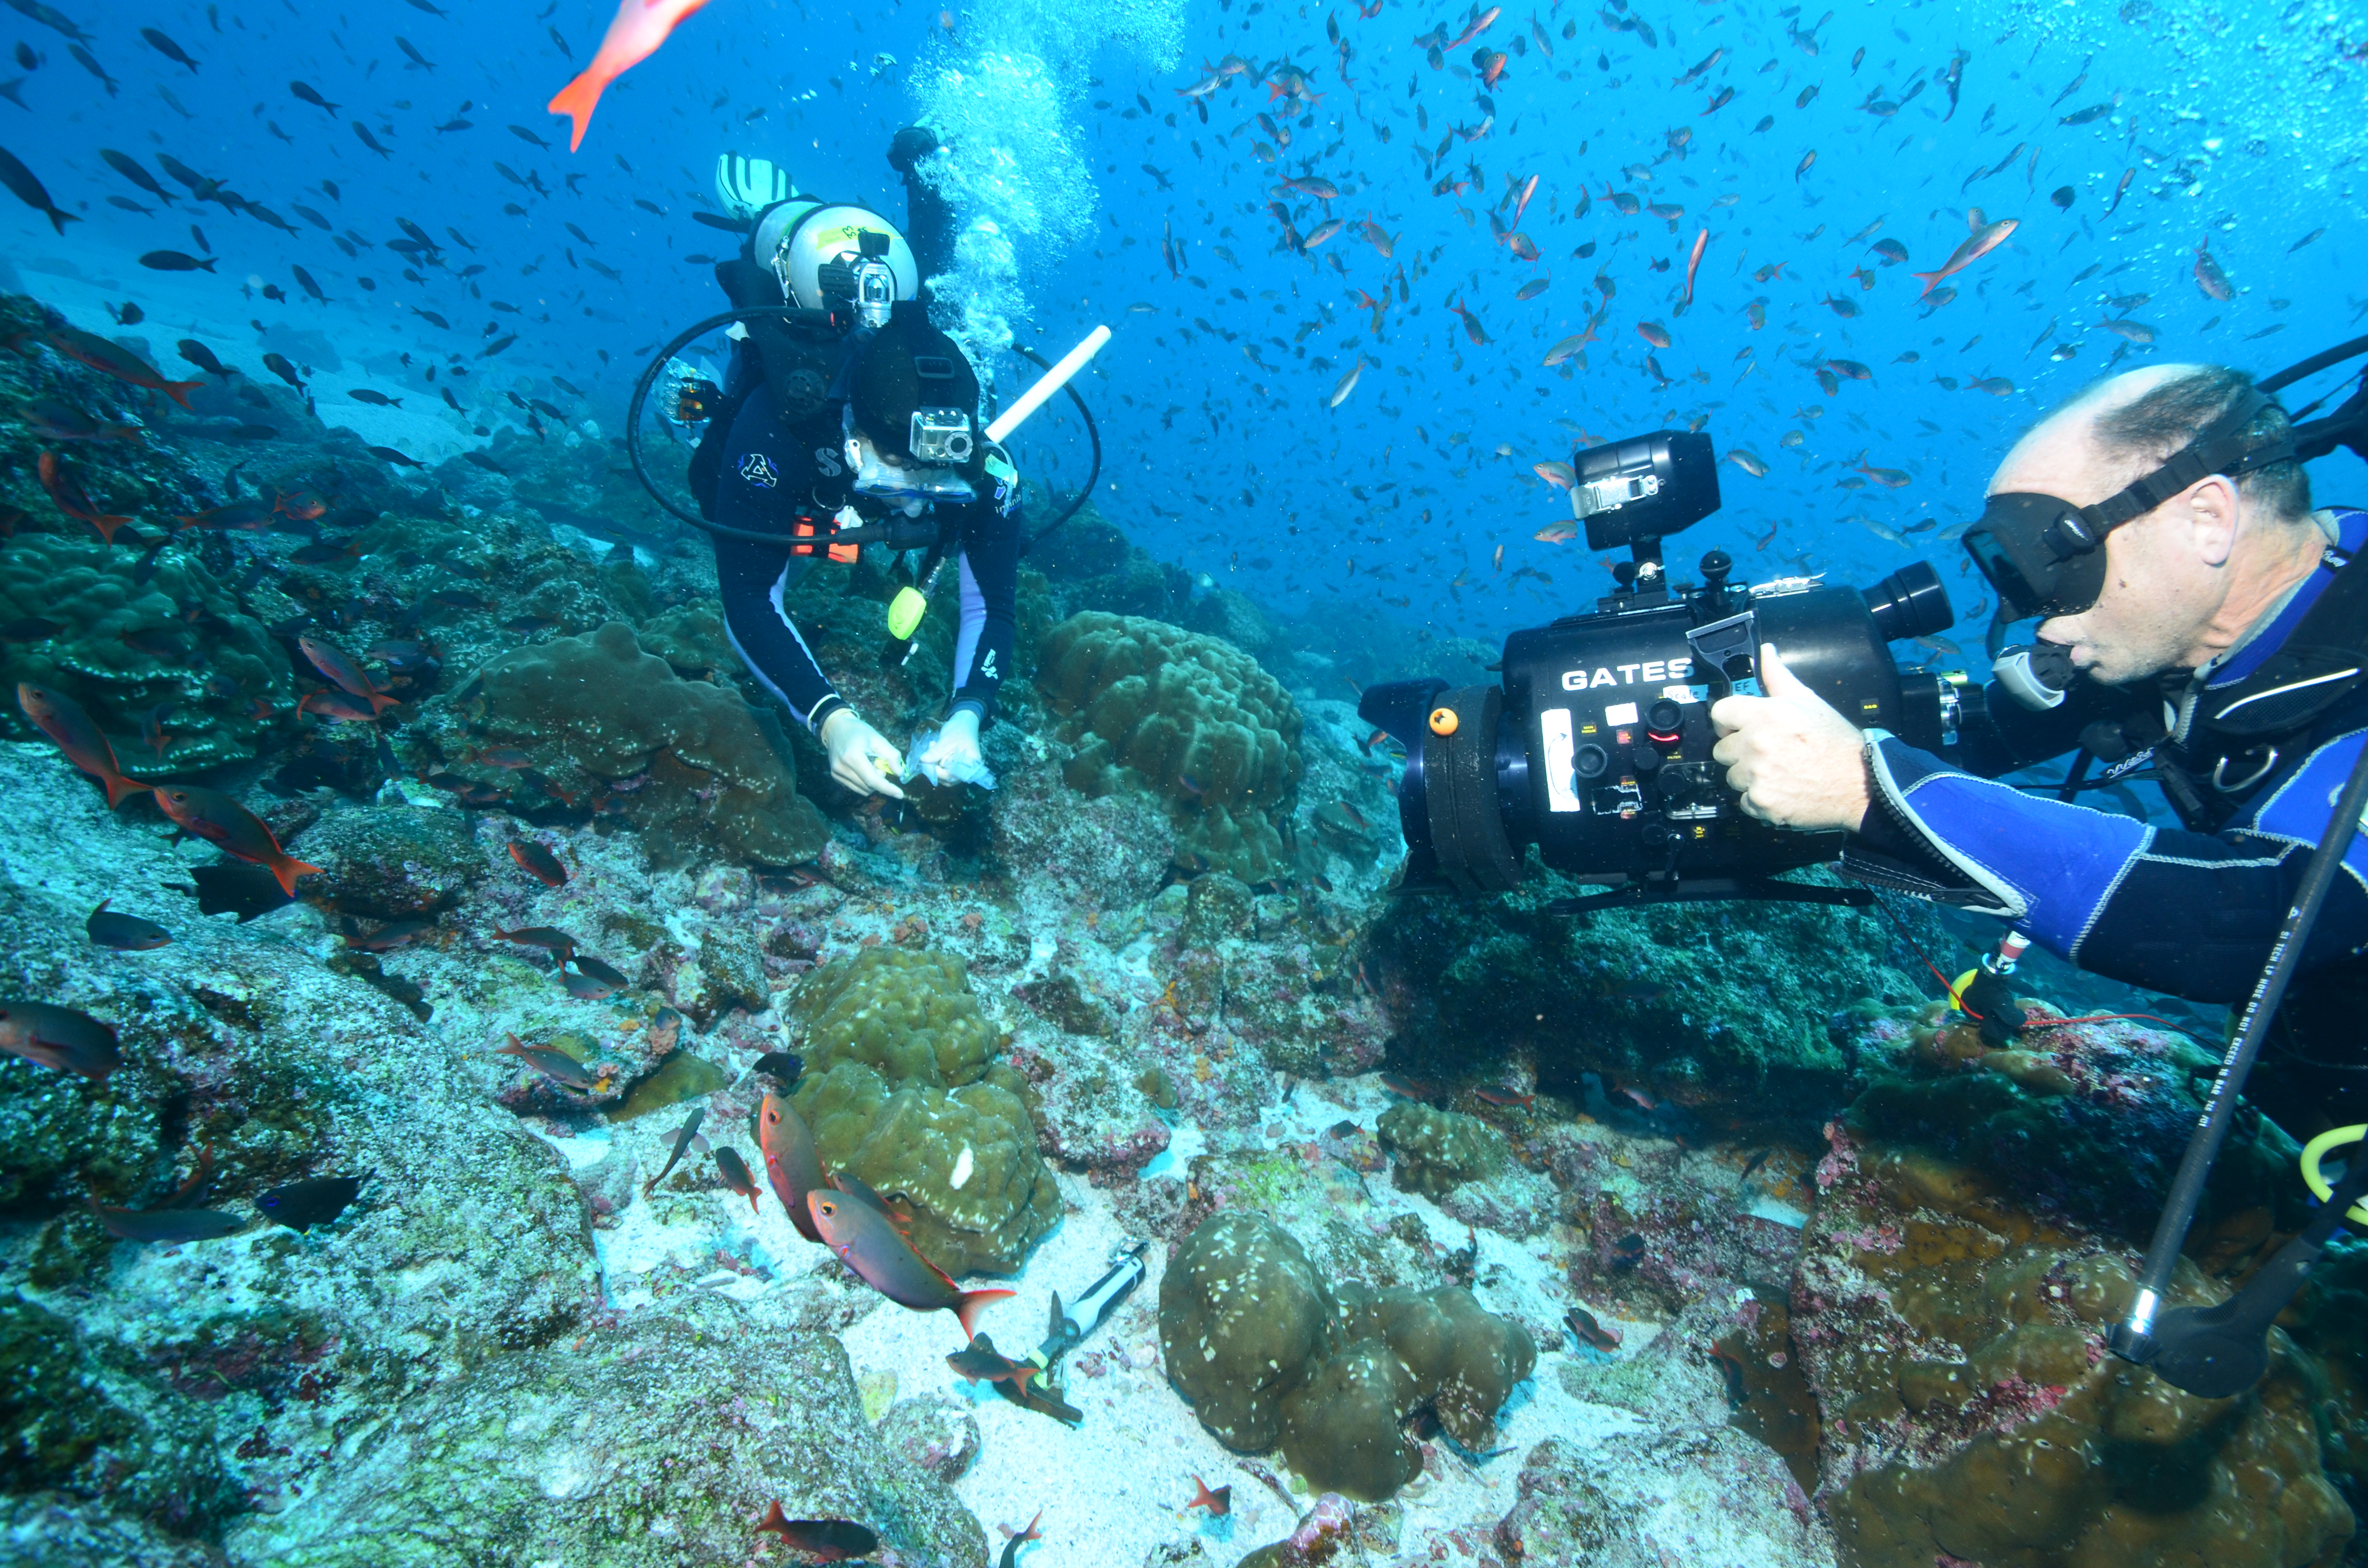 how to get work experience in marine biology